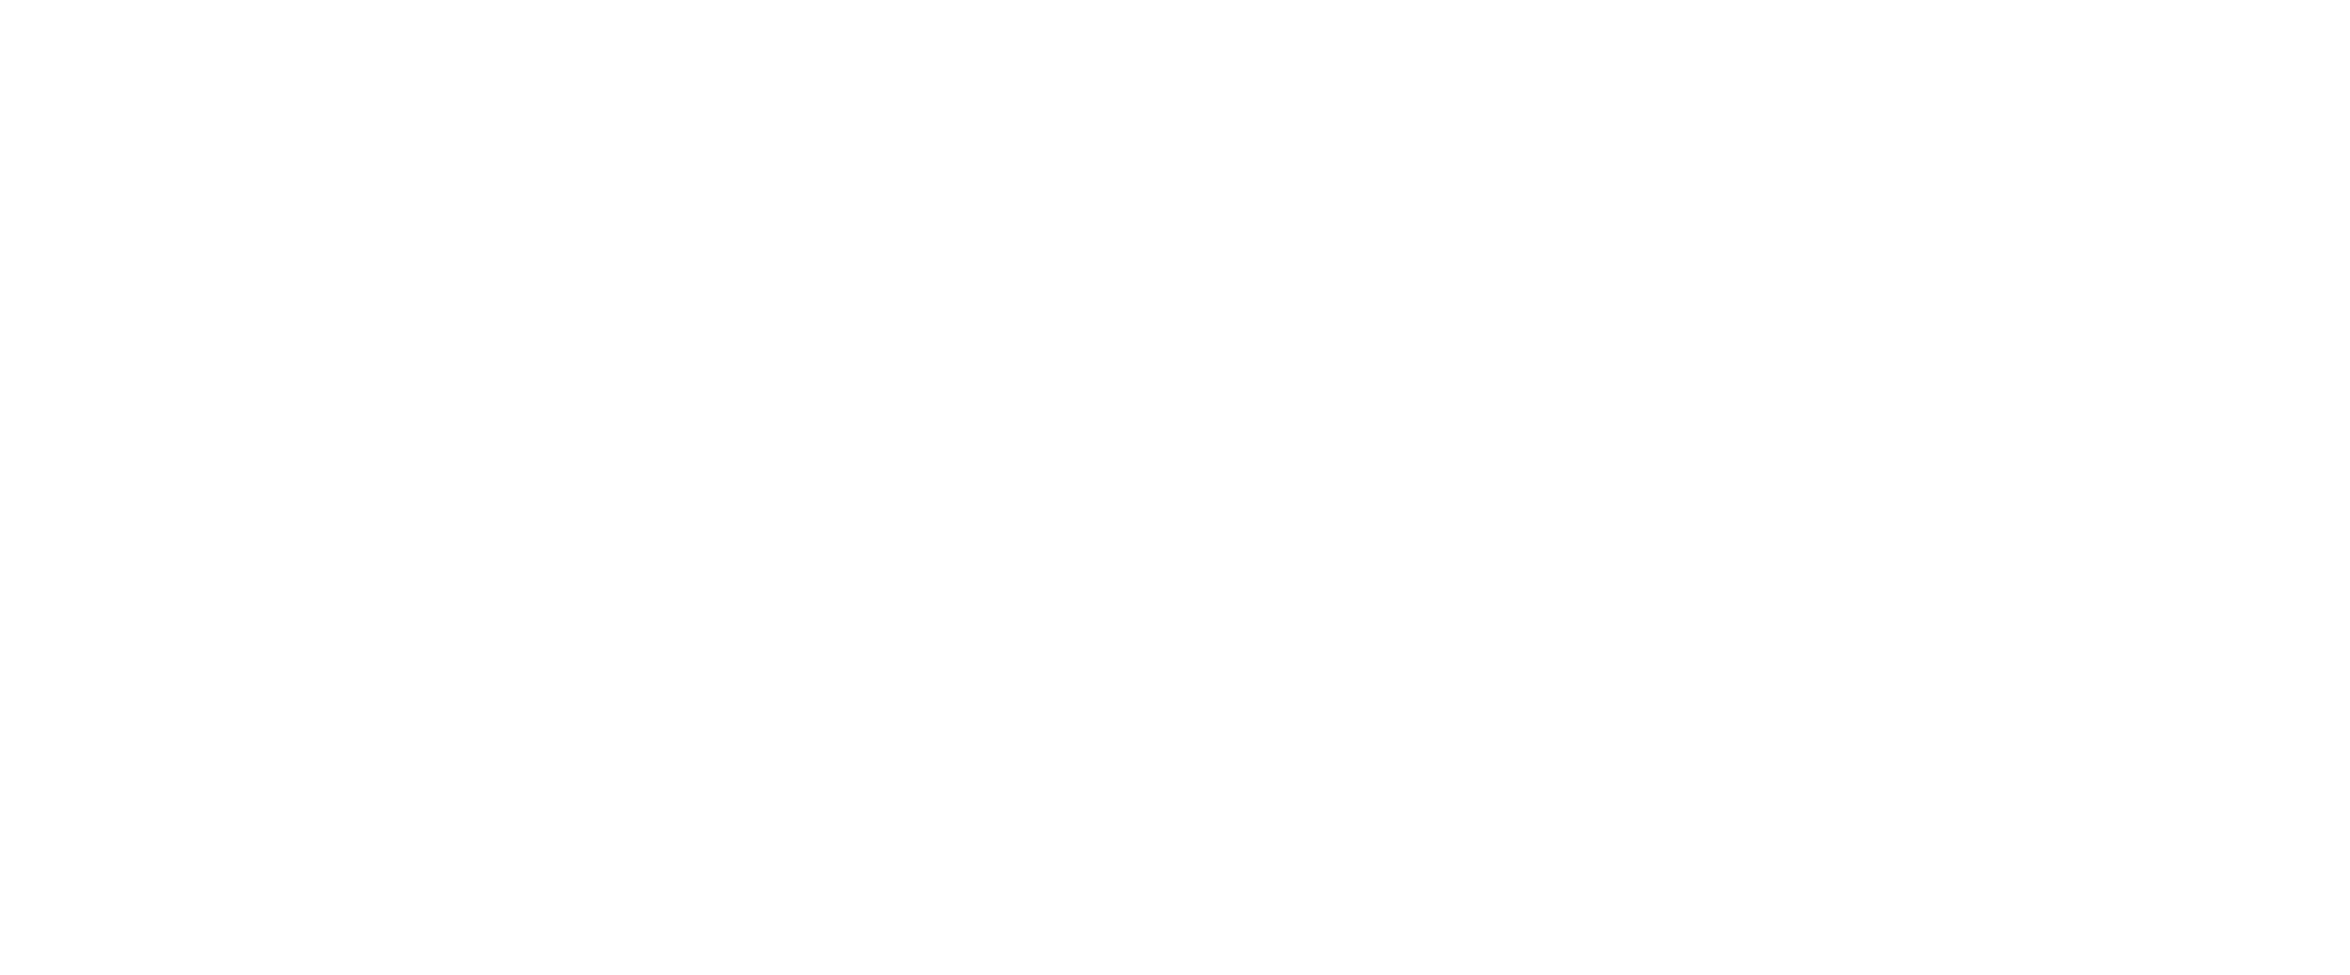 Cannondale Active Bikes | Everyday transport, fitness and Fun